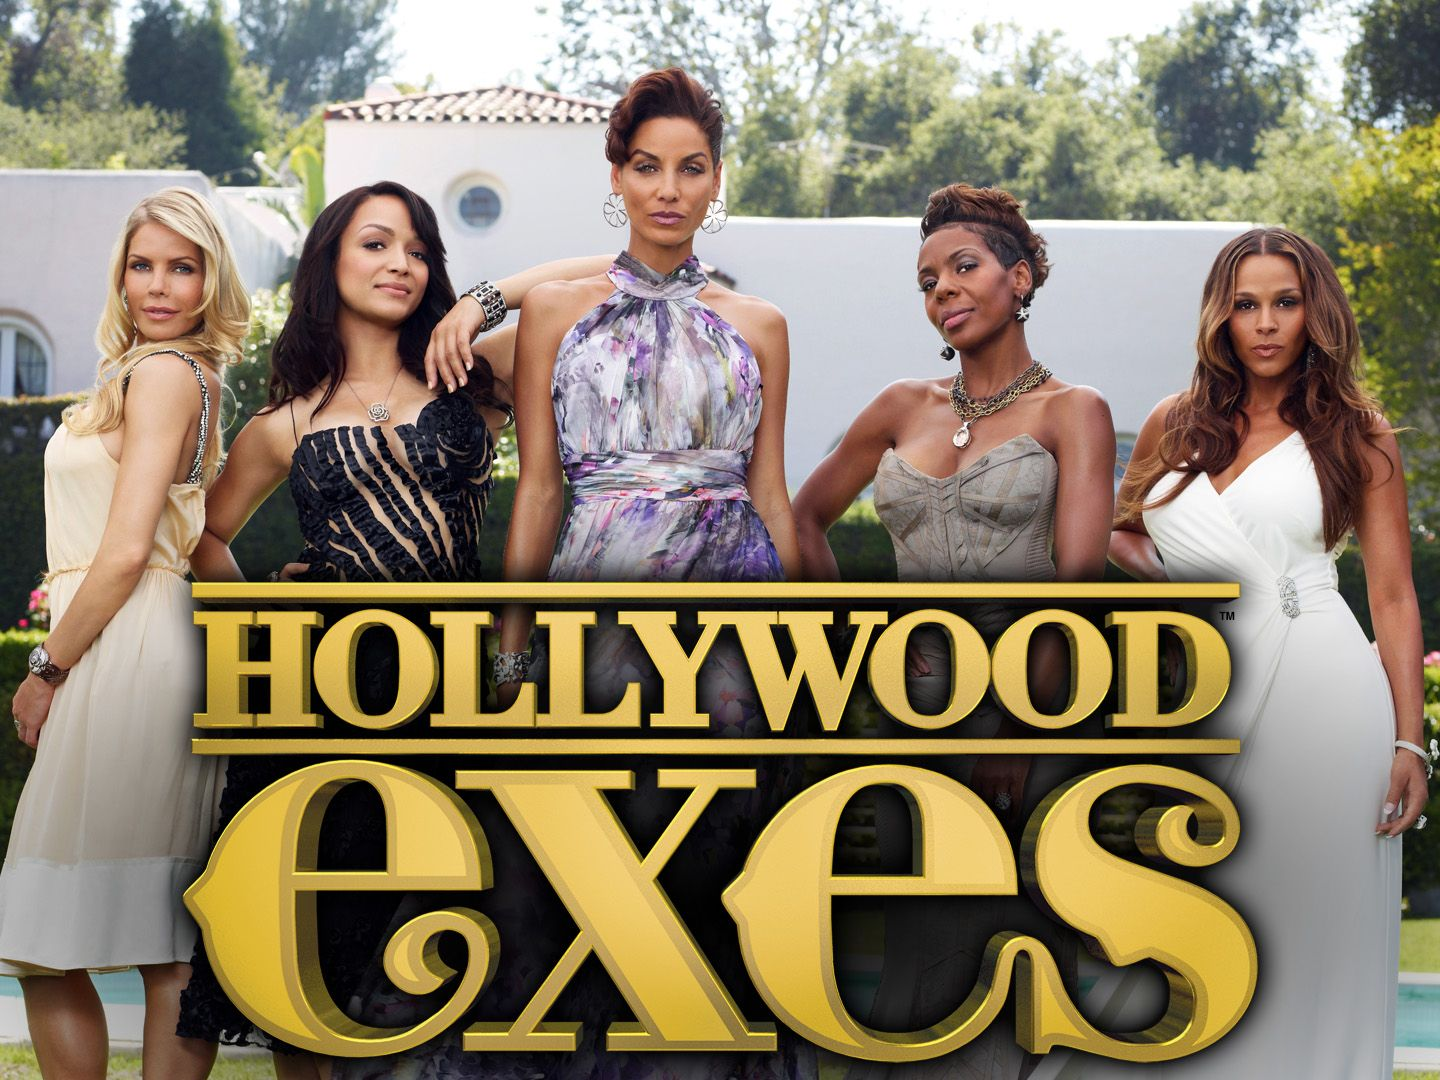 Karencallsit Vh1 S Hollywood Exes Confirms New Season And Cast Member Free Tv Shows Best Tv Shows Hollywood